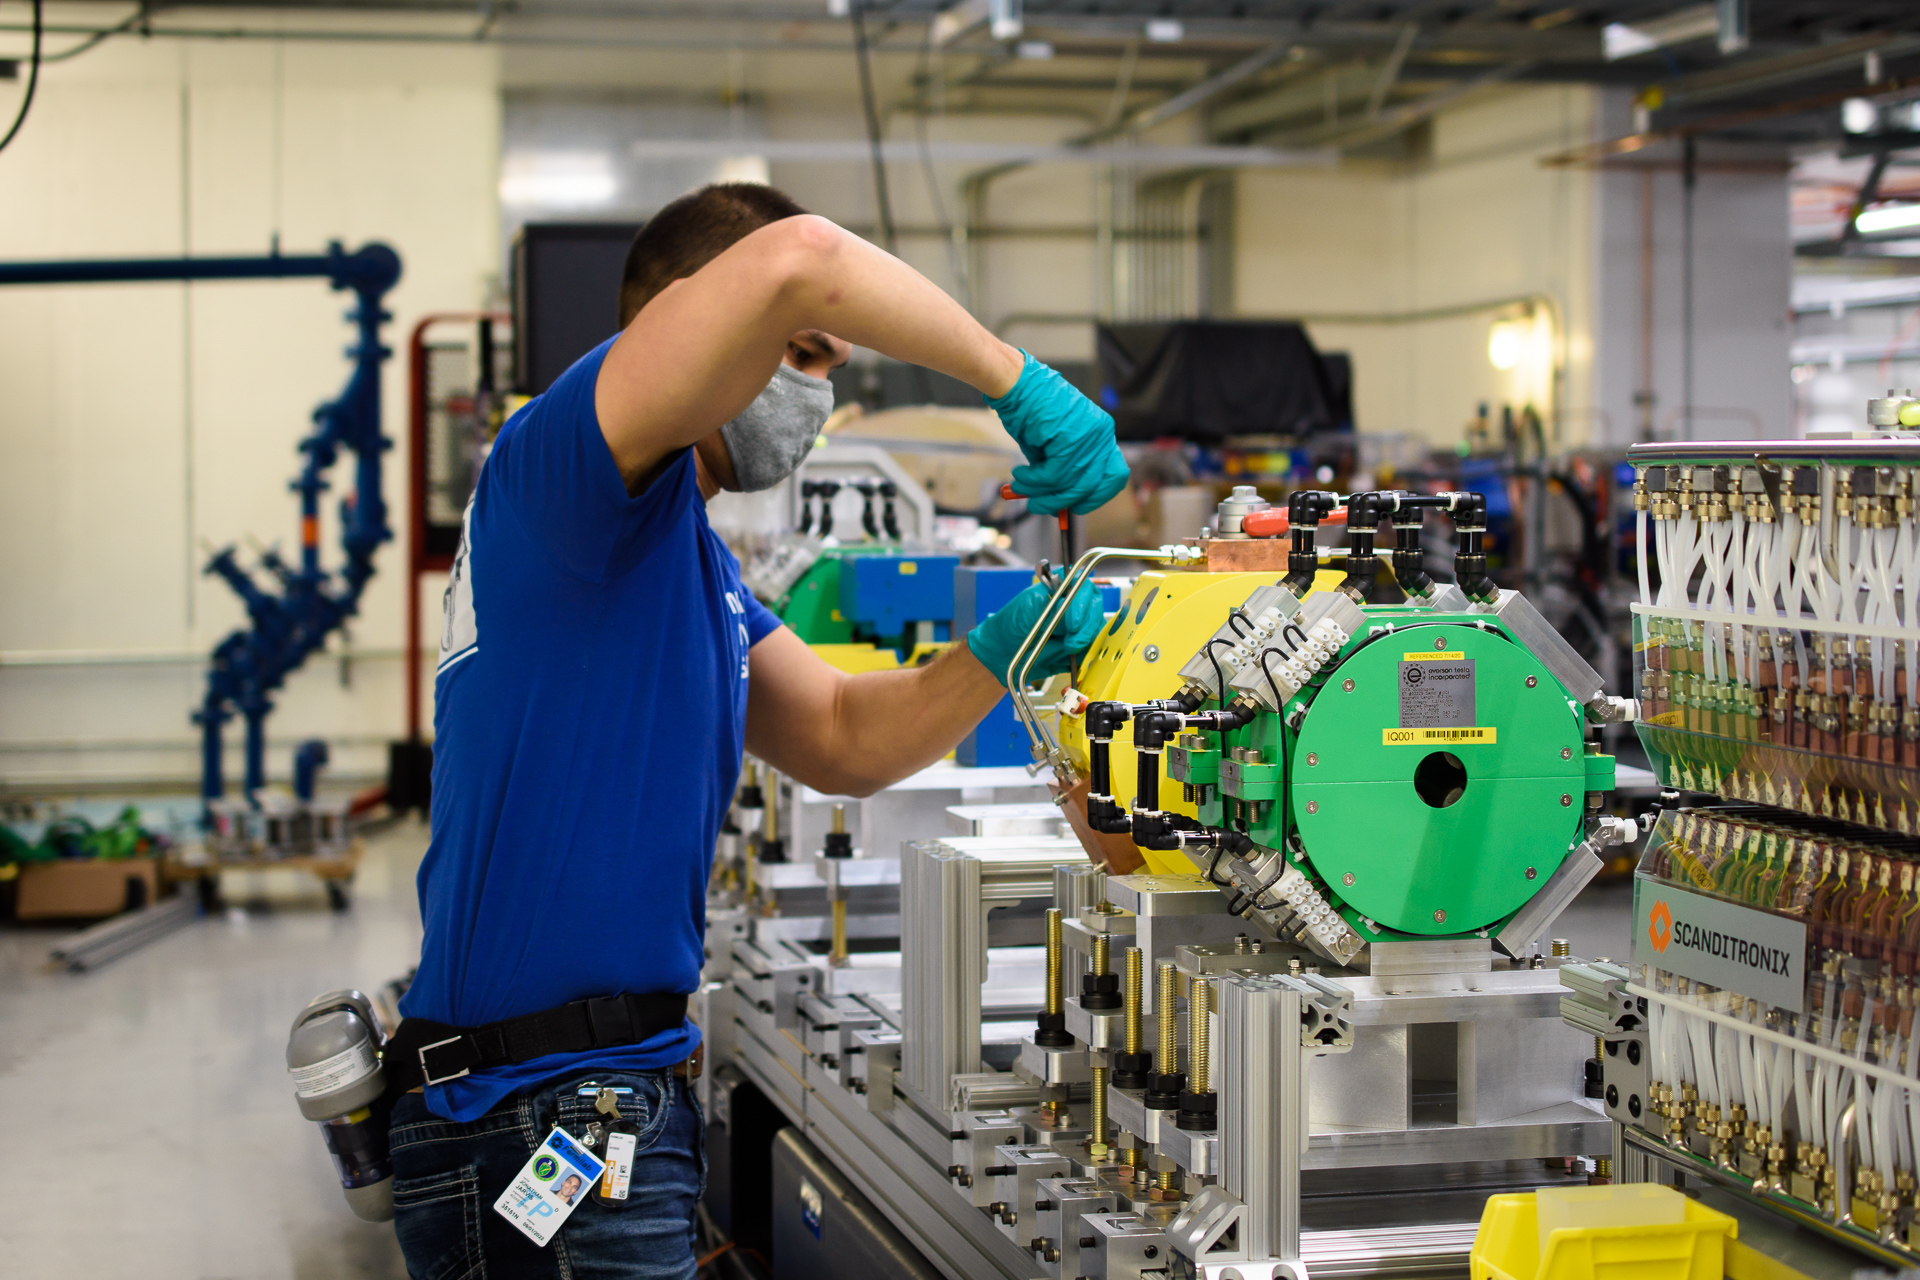 JJonathan Jarvis installs the apparatus for the for the OSC experiment on optical stochastic cooling in the Fermilab Integrable Optics Test Accelerator, known as IOTA, in November. The experiment uses infrared light emitted by electrons in an undulator magnet to sense and to adjust their positions and velocities. The goal is to demonstrate for the first time a significant increase in the density and therefore in the quality of charged particle beams using this principle. people, IOTA, accelerator science, accelerator Photo: Giulio Stancari